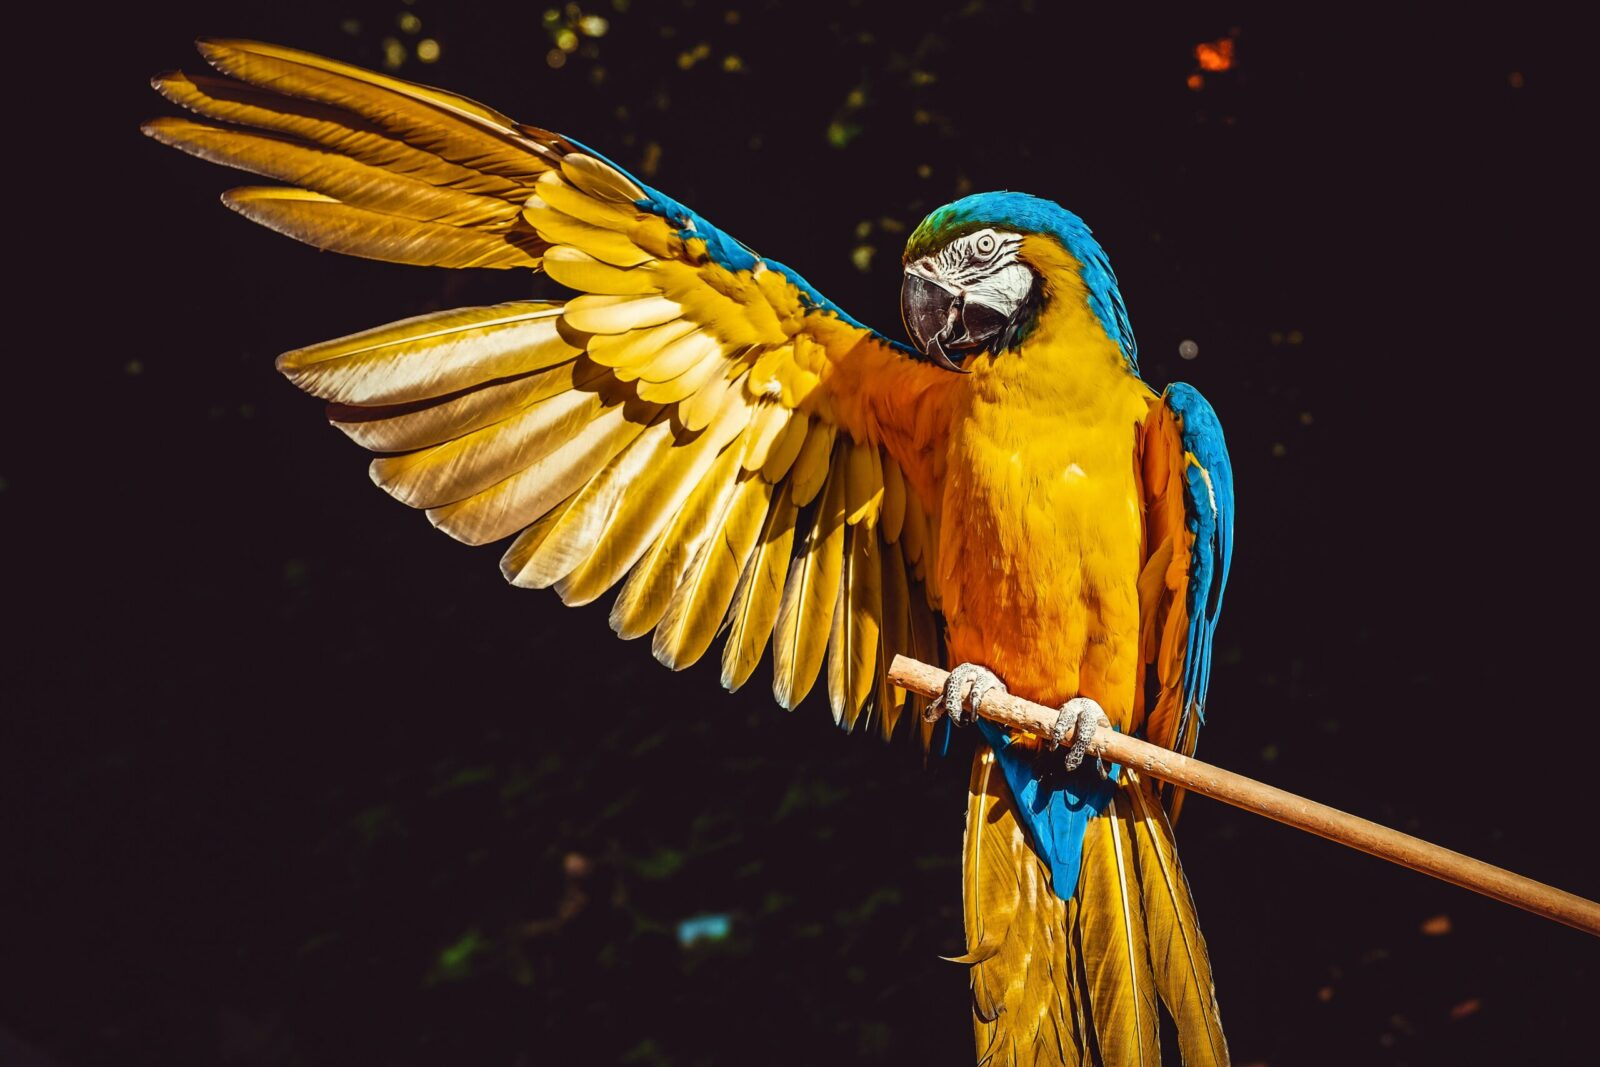 Blue and Gold Macaw Diet